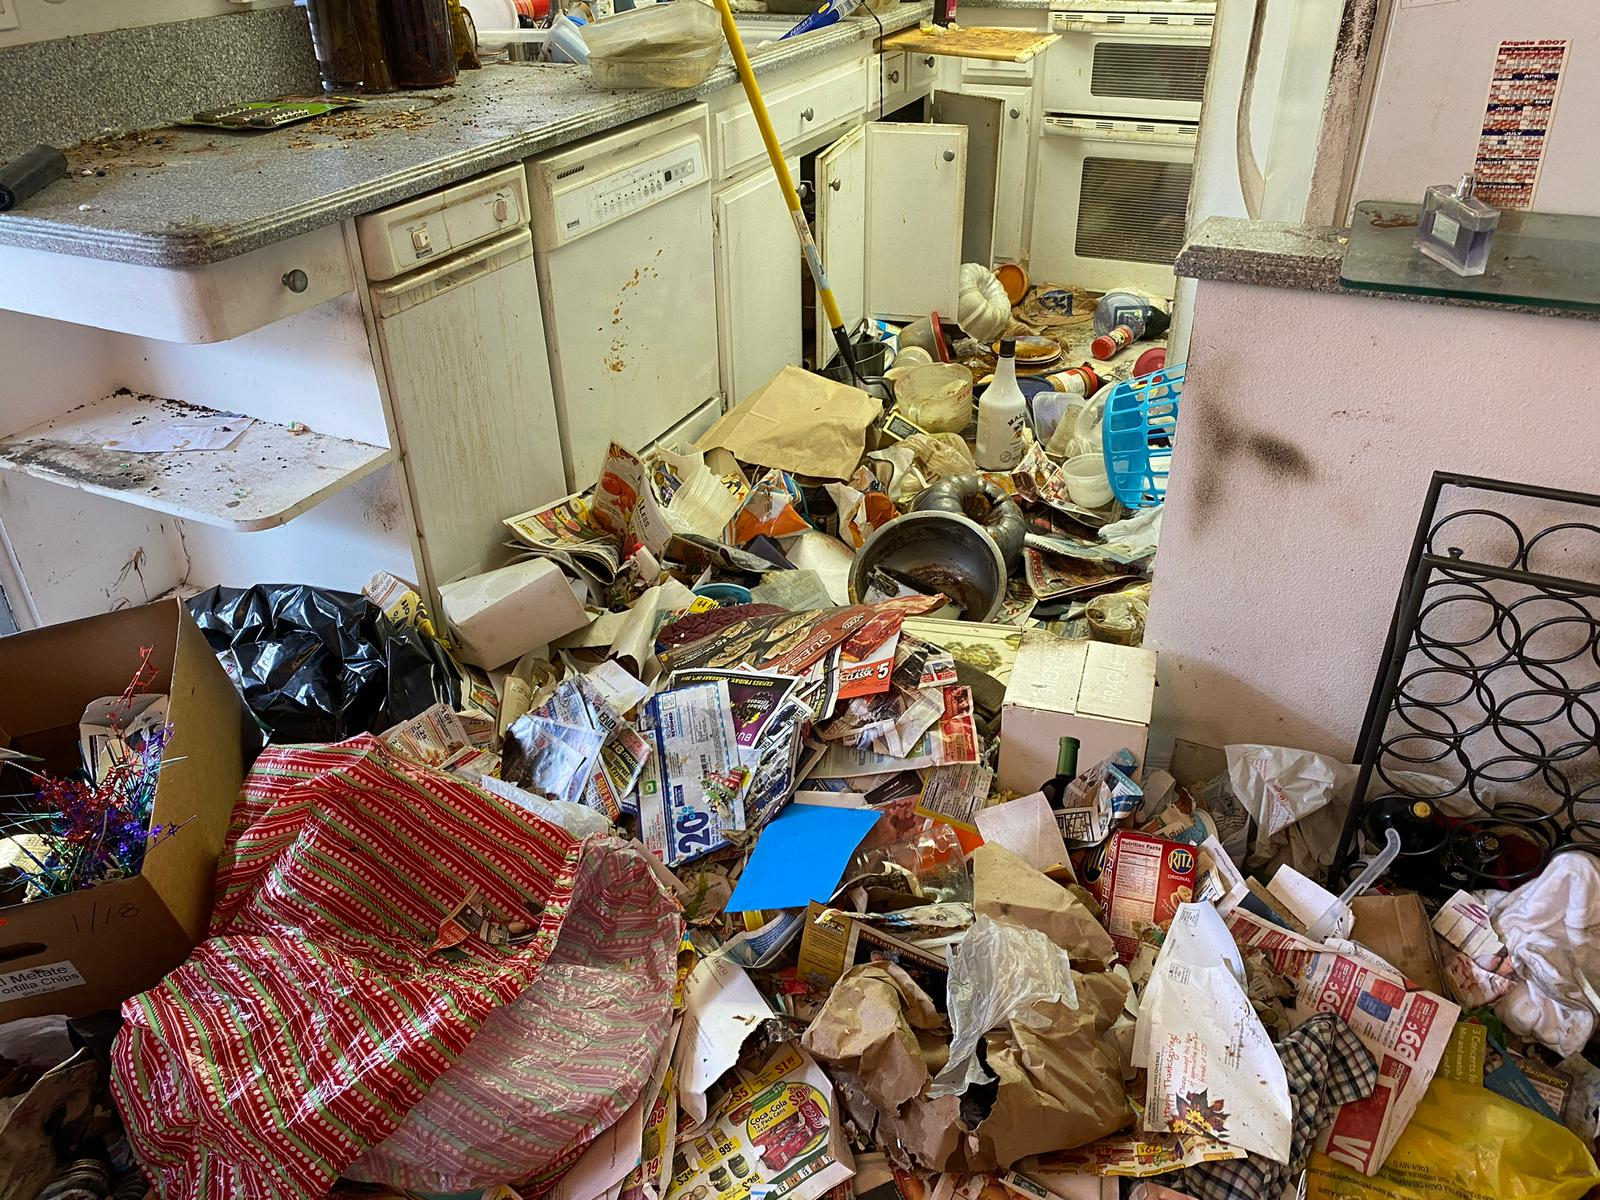 Image shows a hoarding scene where the kitchen area is blocked by trash and clutter. Kitchen cabinets and space in general is completely unusable.